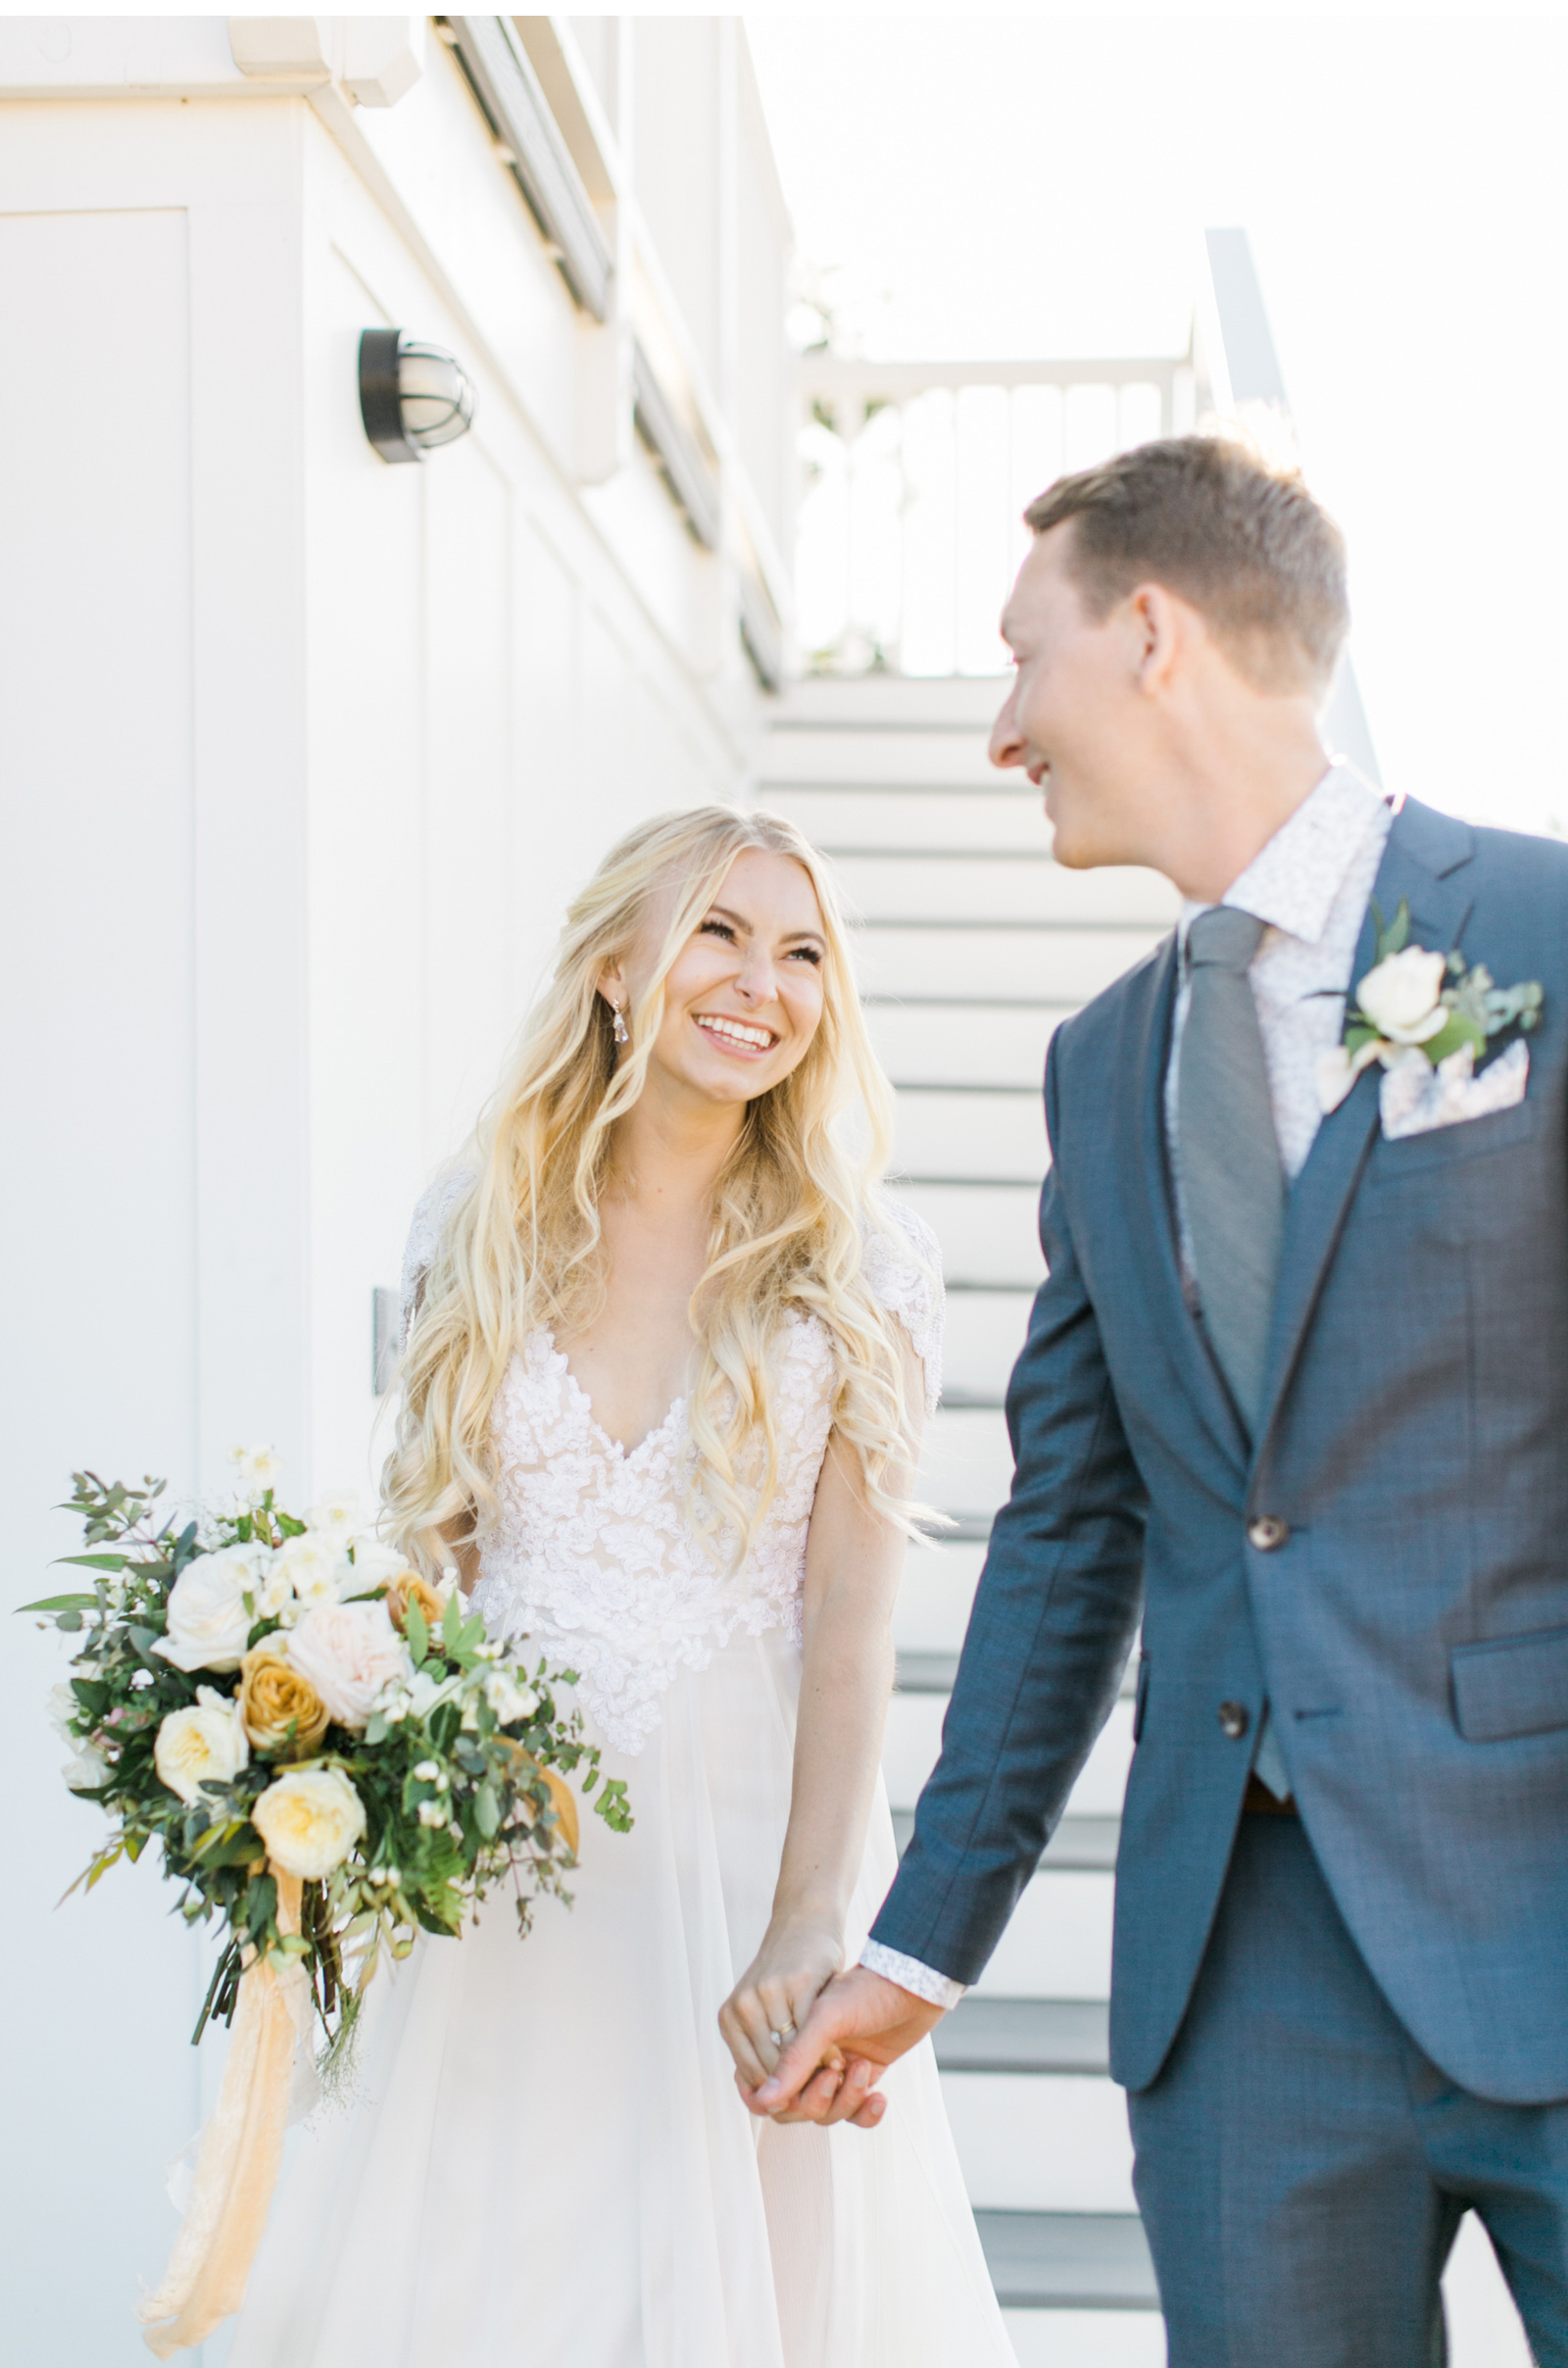 Paso-Robles-Style-Me-Pretty-The-Knot-Wedding-Natalie-Schutt-Photography's-Wedding_02.jpg